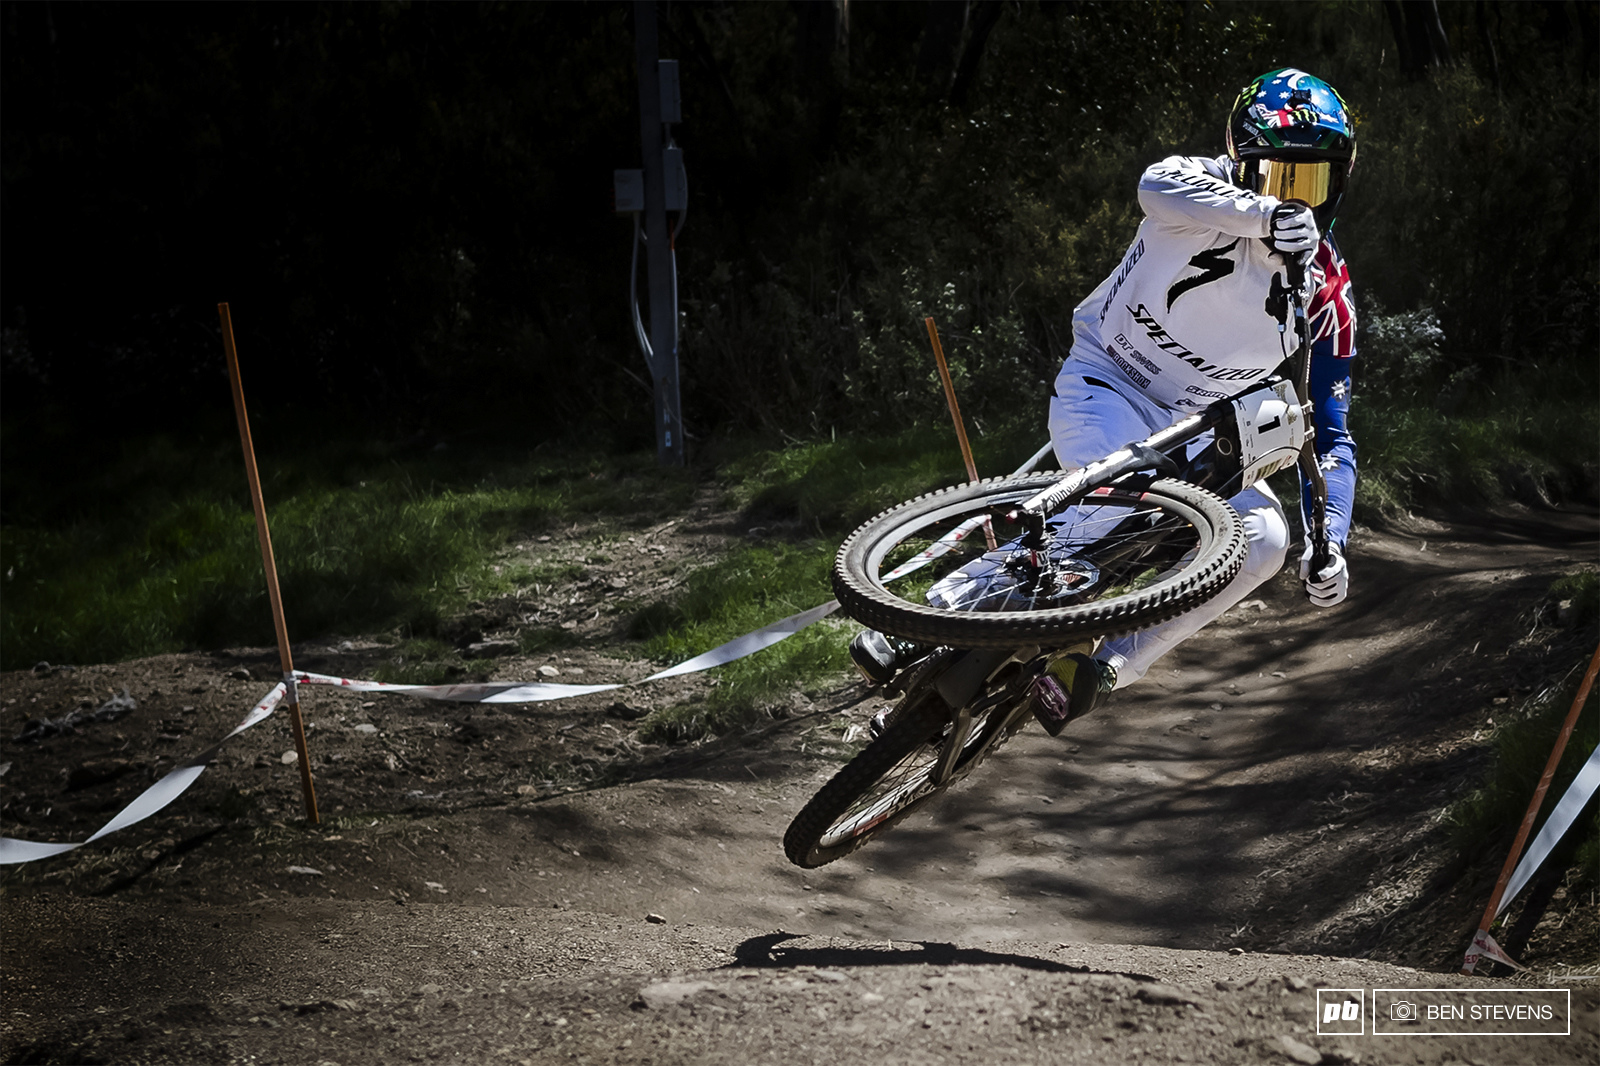 Troy on his way to claiming victory in the Elite Mens DH